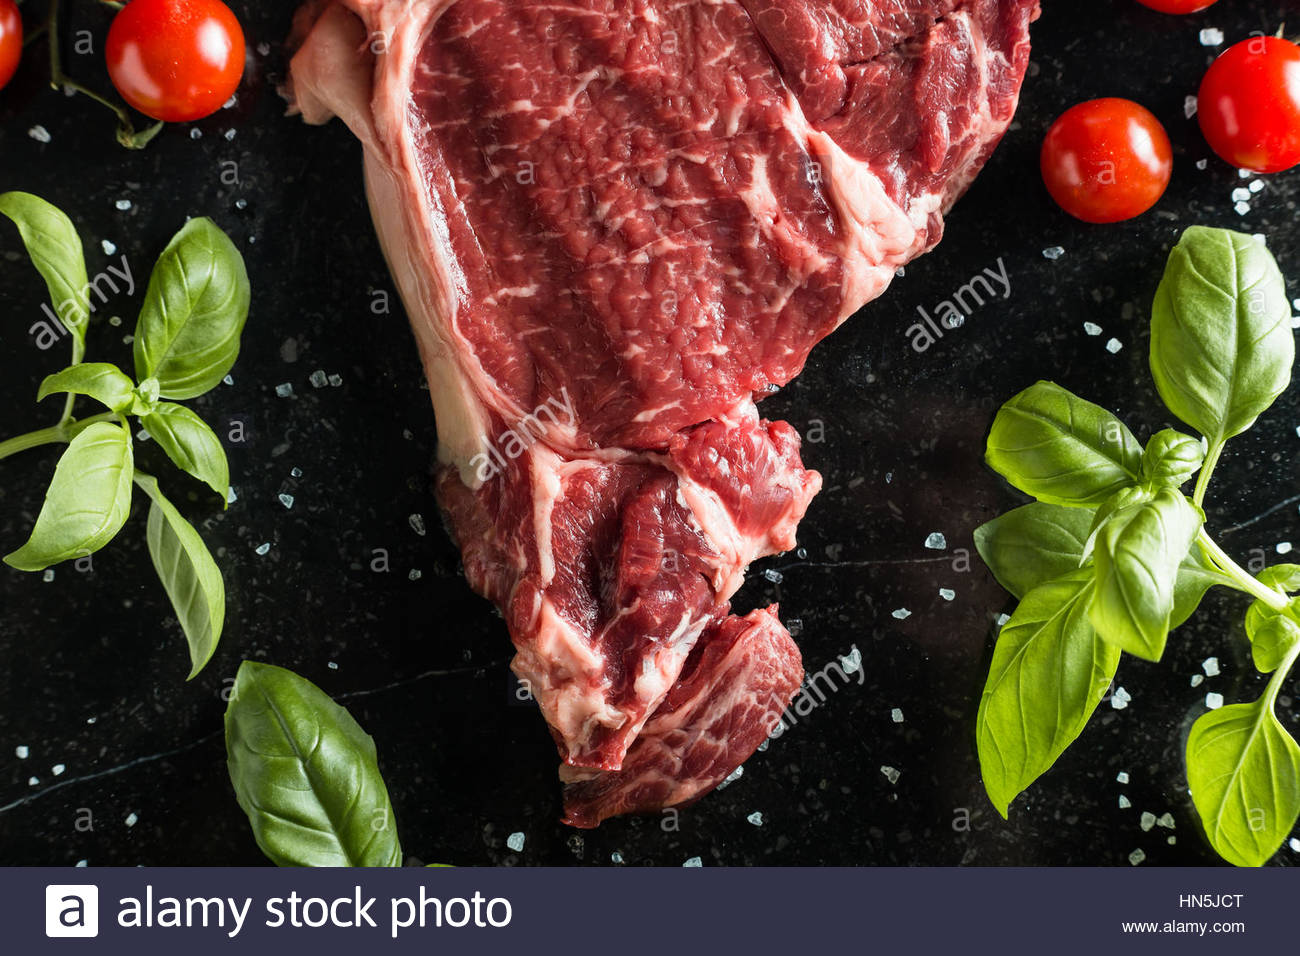 Fresh steak served with spices, tomatoes and leafs of basil on marble background. Uncooked beefsteak cooking on - Stock Image